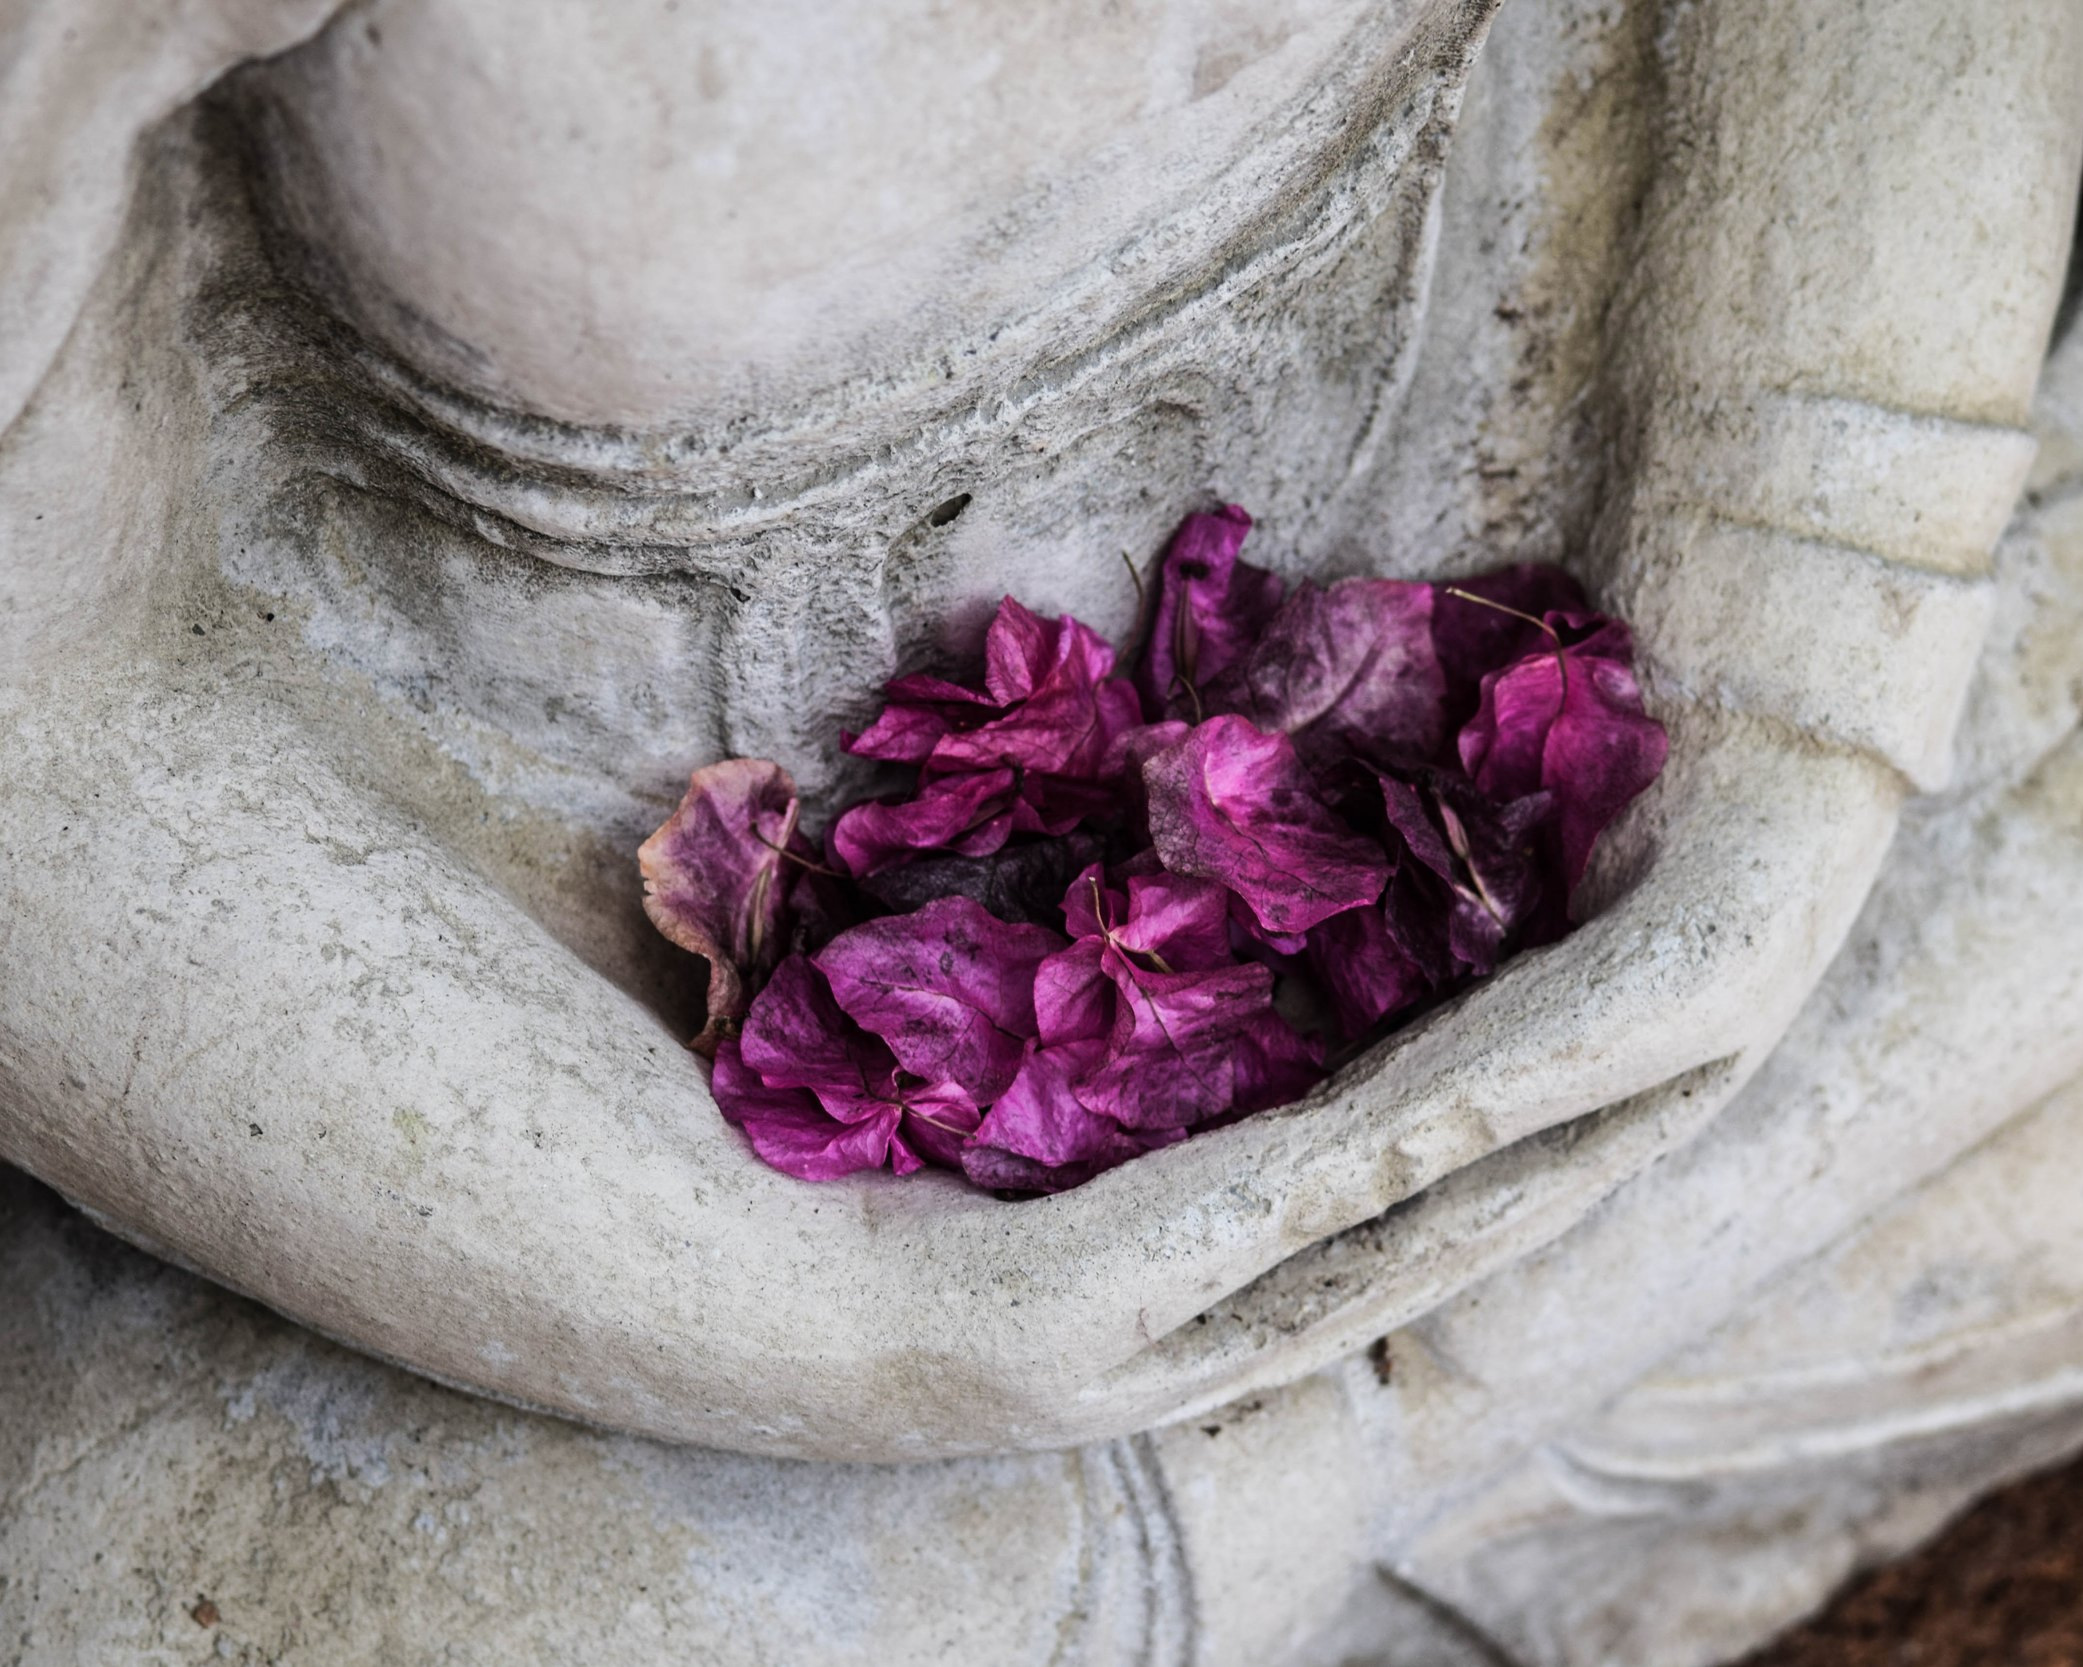 DECEMBER: BEAUTIFUL BODY RITUALS - During this month where you can often feel disconnected from the body, you'll learn four easy, inexpensive ways to reconnect to your